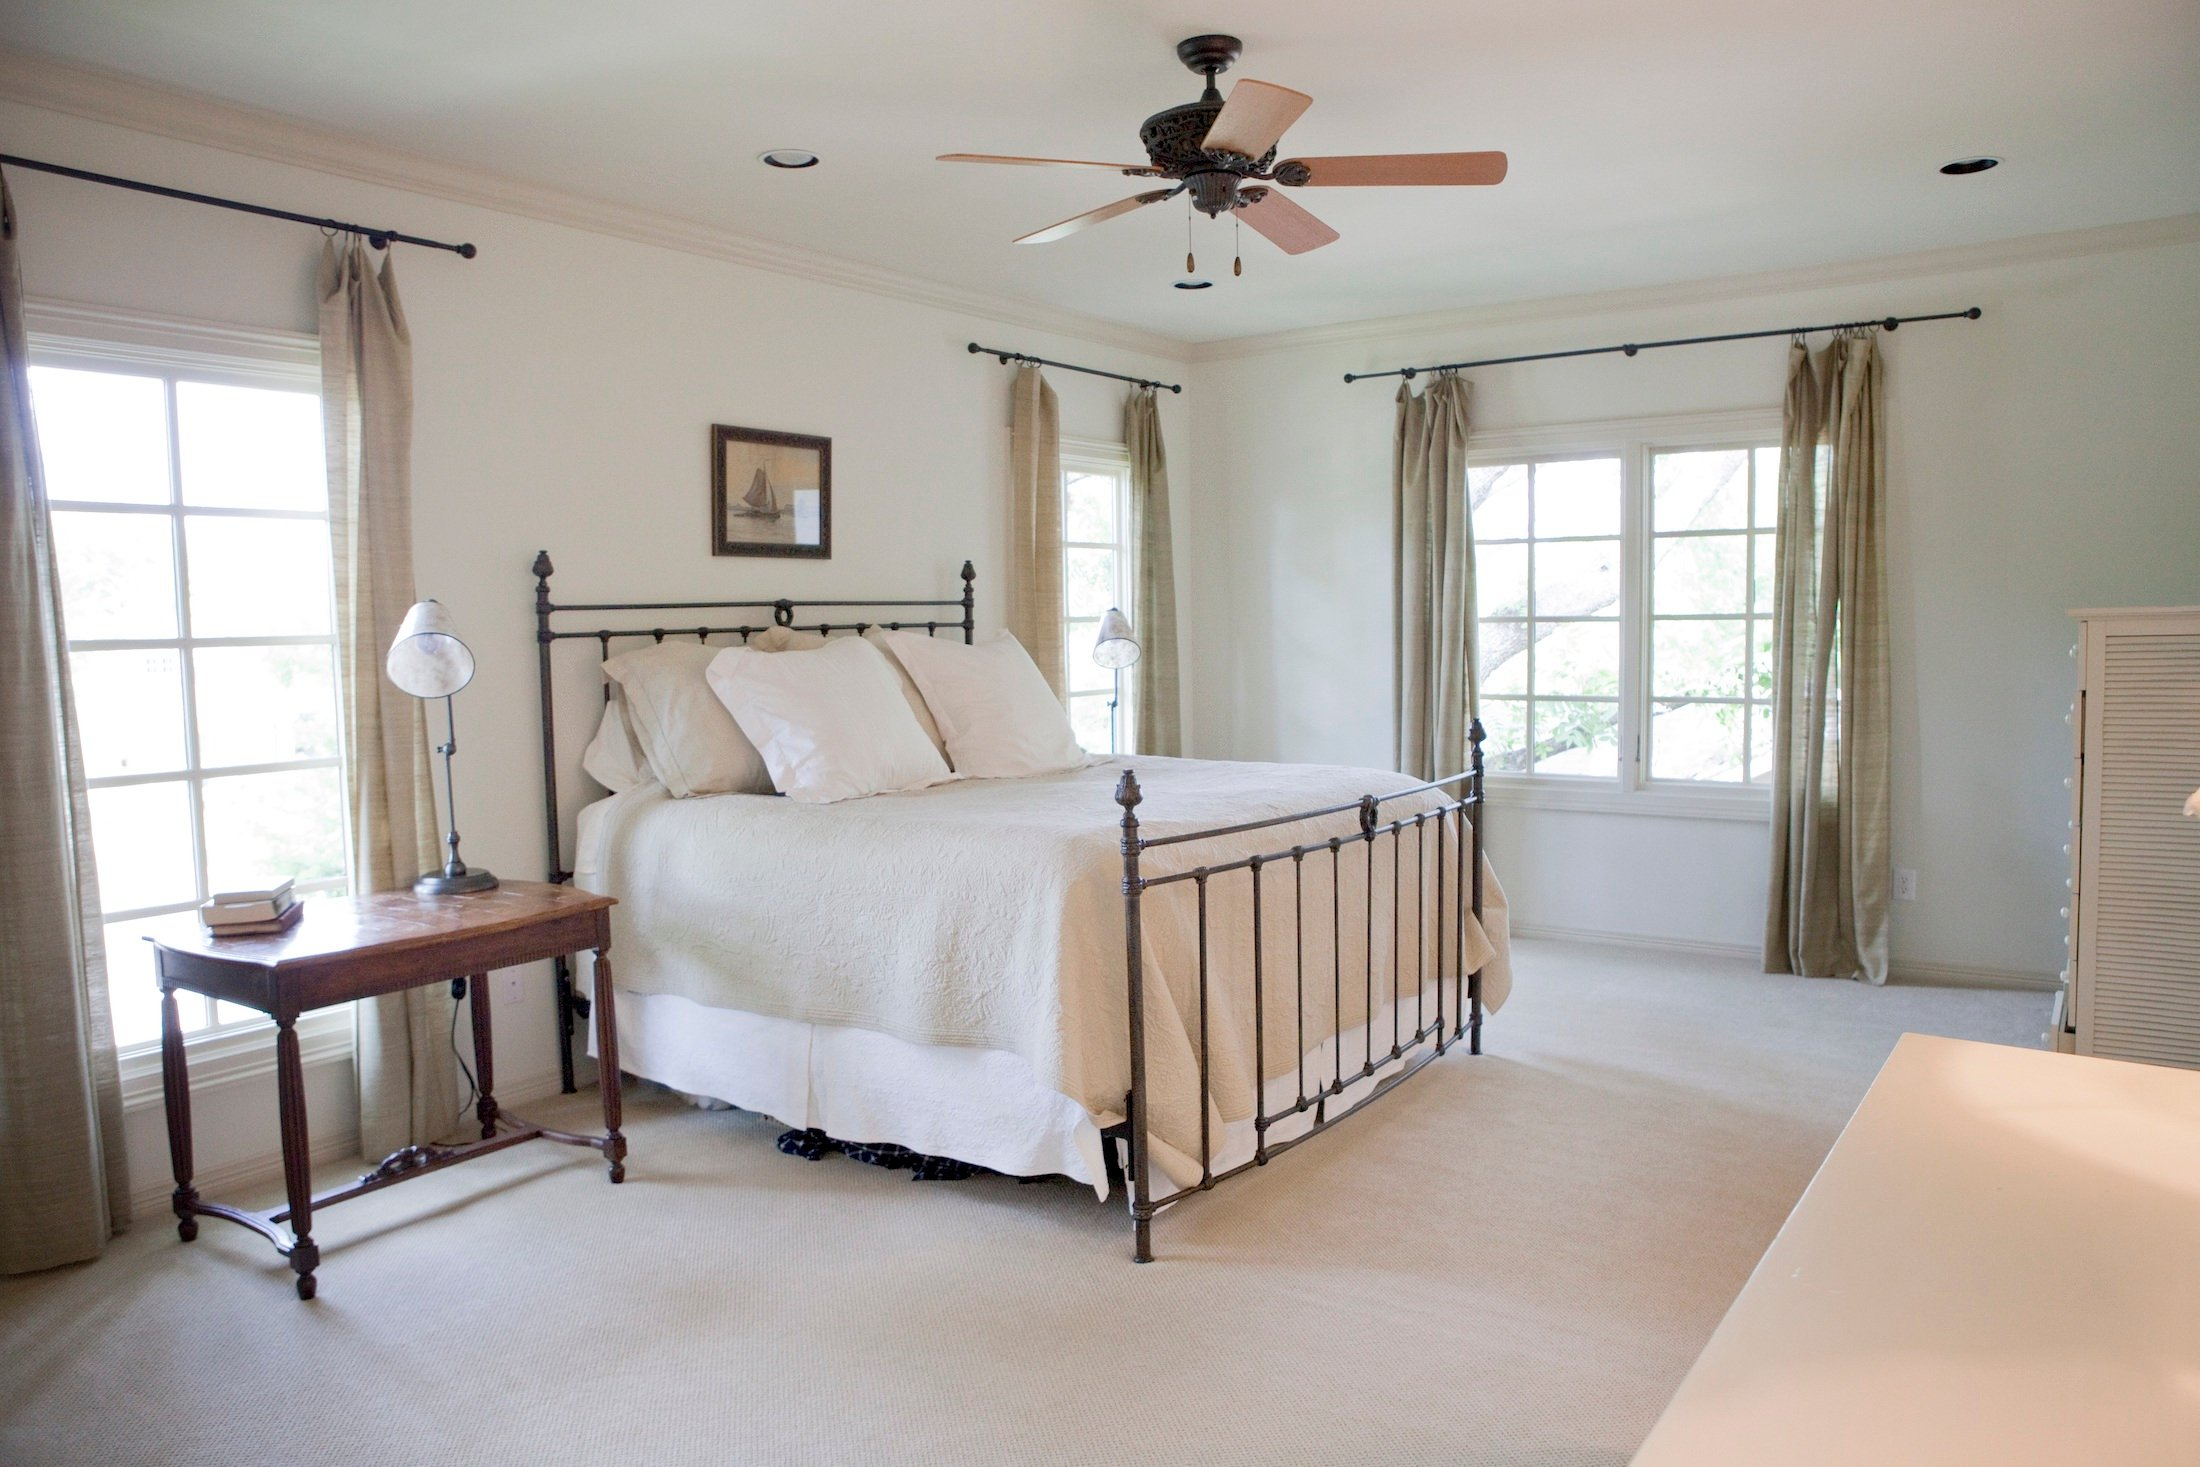 Bedroom Custom Home Design (Texas Homes): Large Upstairs Bedroom With Wood Windows